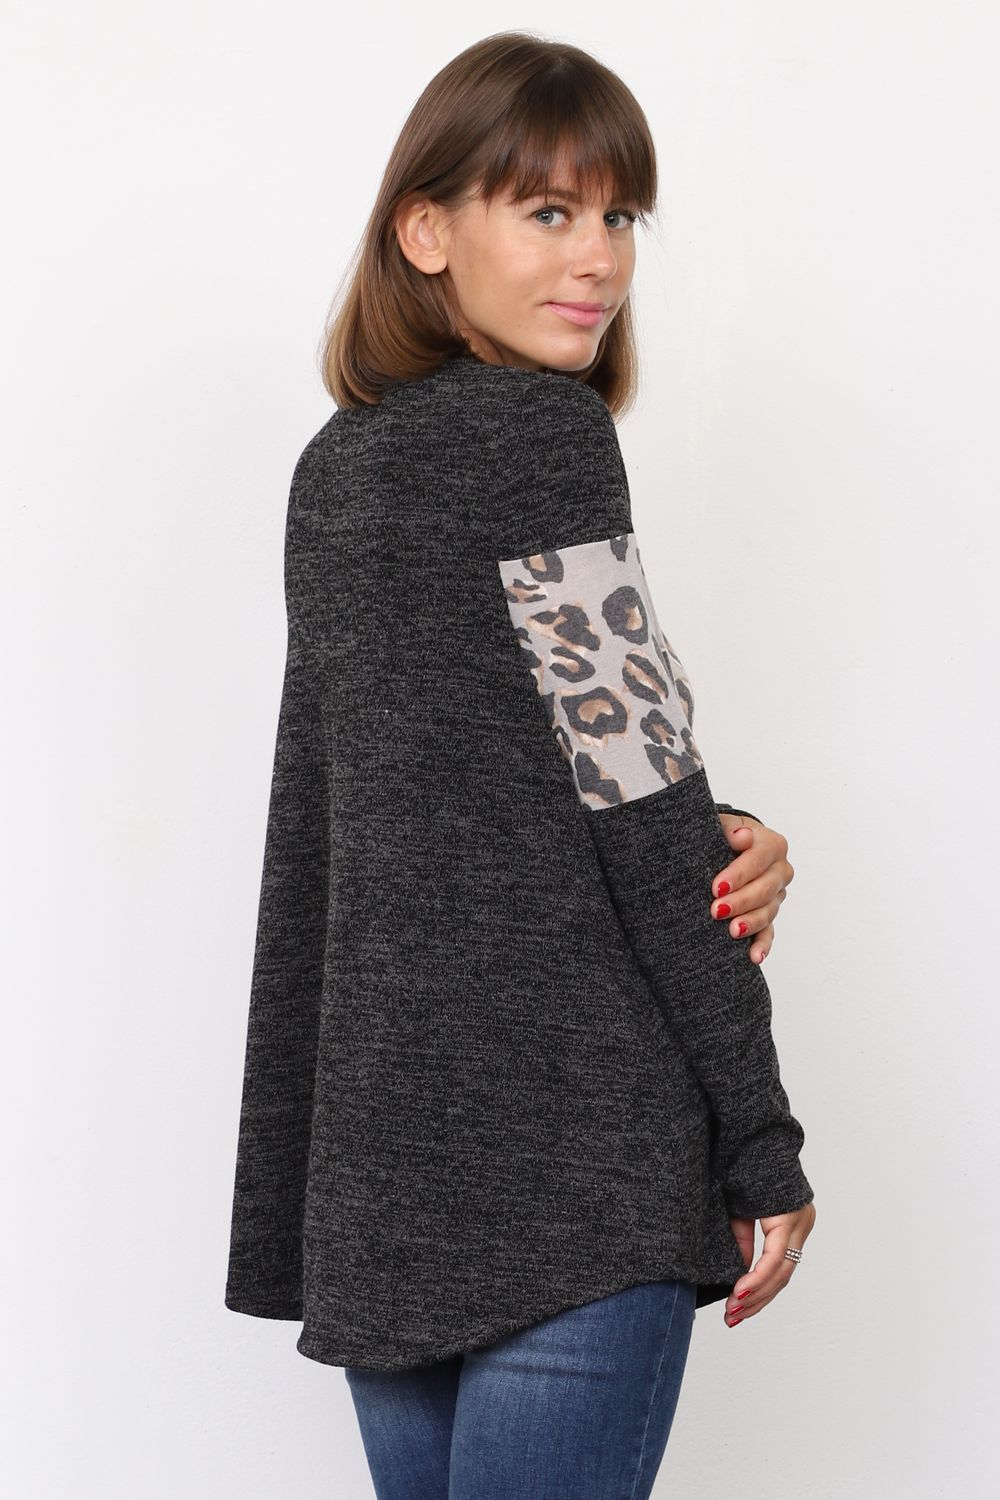 Charcoal & Grey Leopard Panel Tunic Top